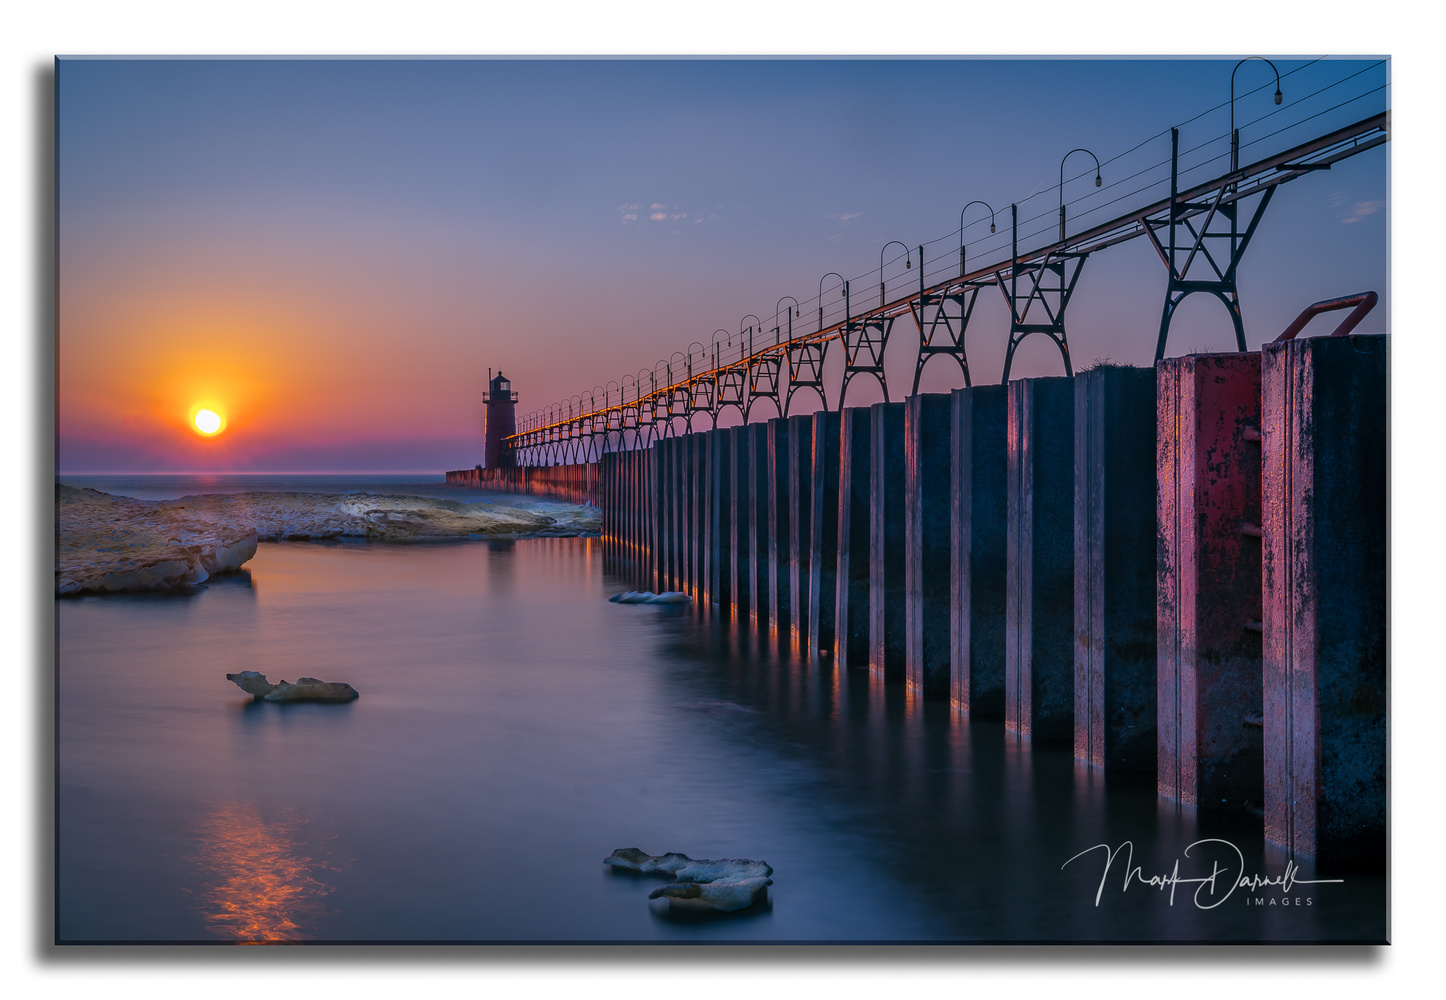 South Haven Pierhead by Mark Darnell